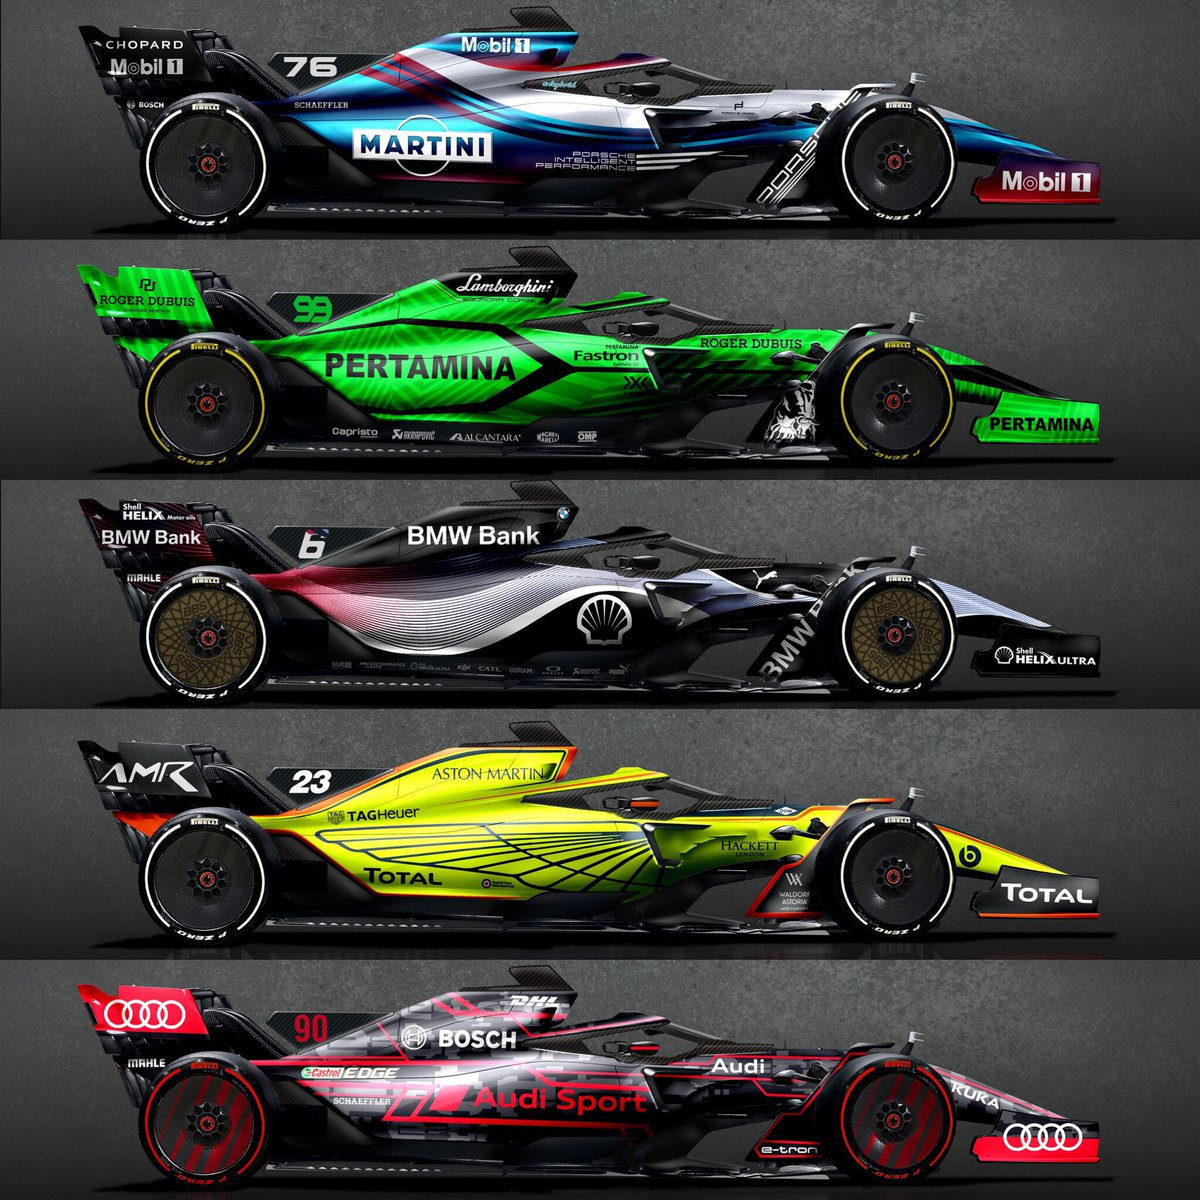 Sean Bull Design Twitterissa 2021 F1 Concept And Manufacturer Liveries Favourite And Who Else Do You Want To See Enter F1 F1 F12021 Formula1 Livery Austriagp Https T Co Bawk0mlfvi